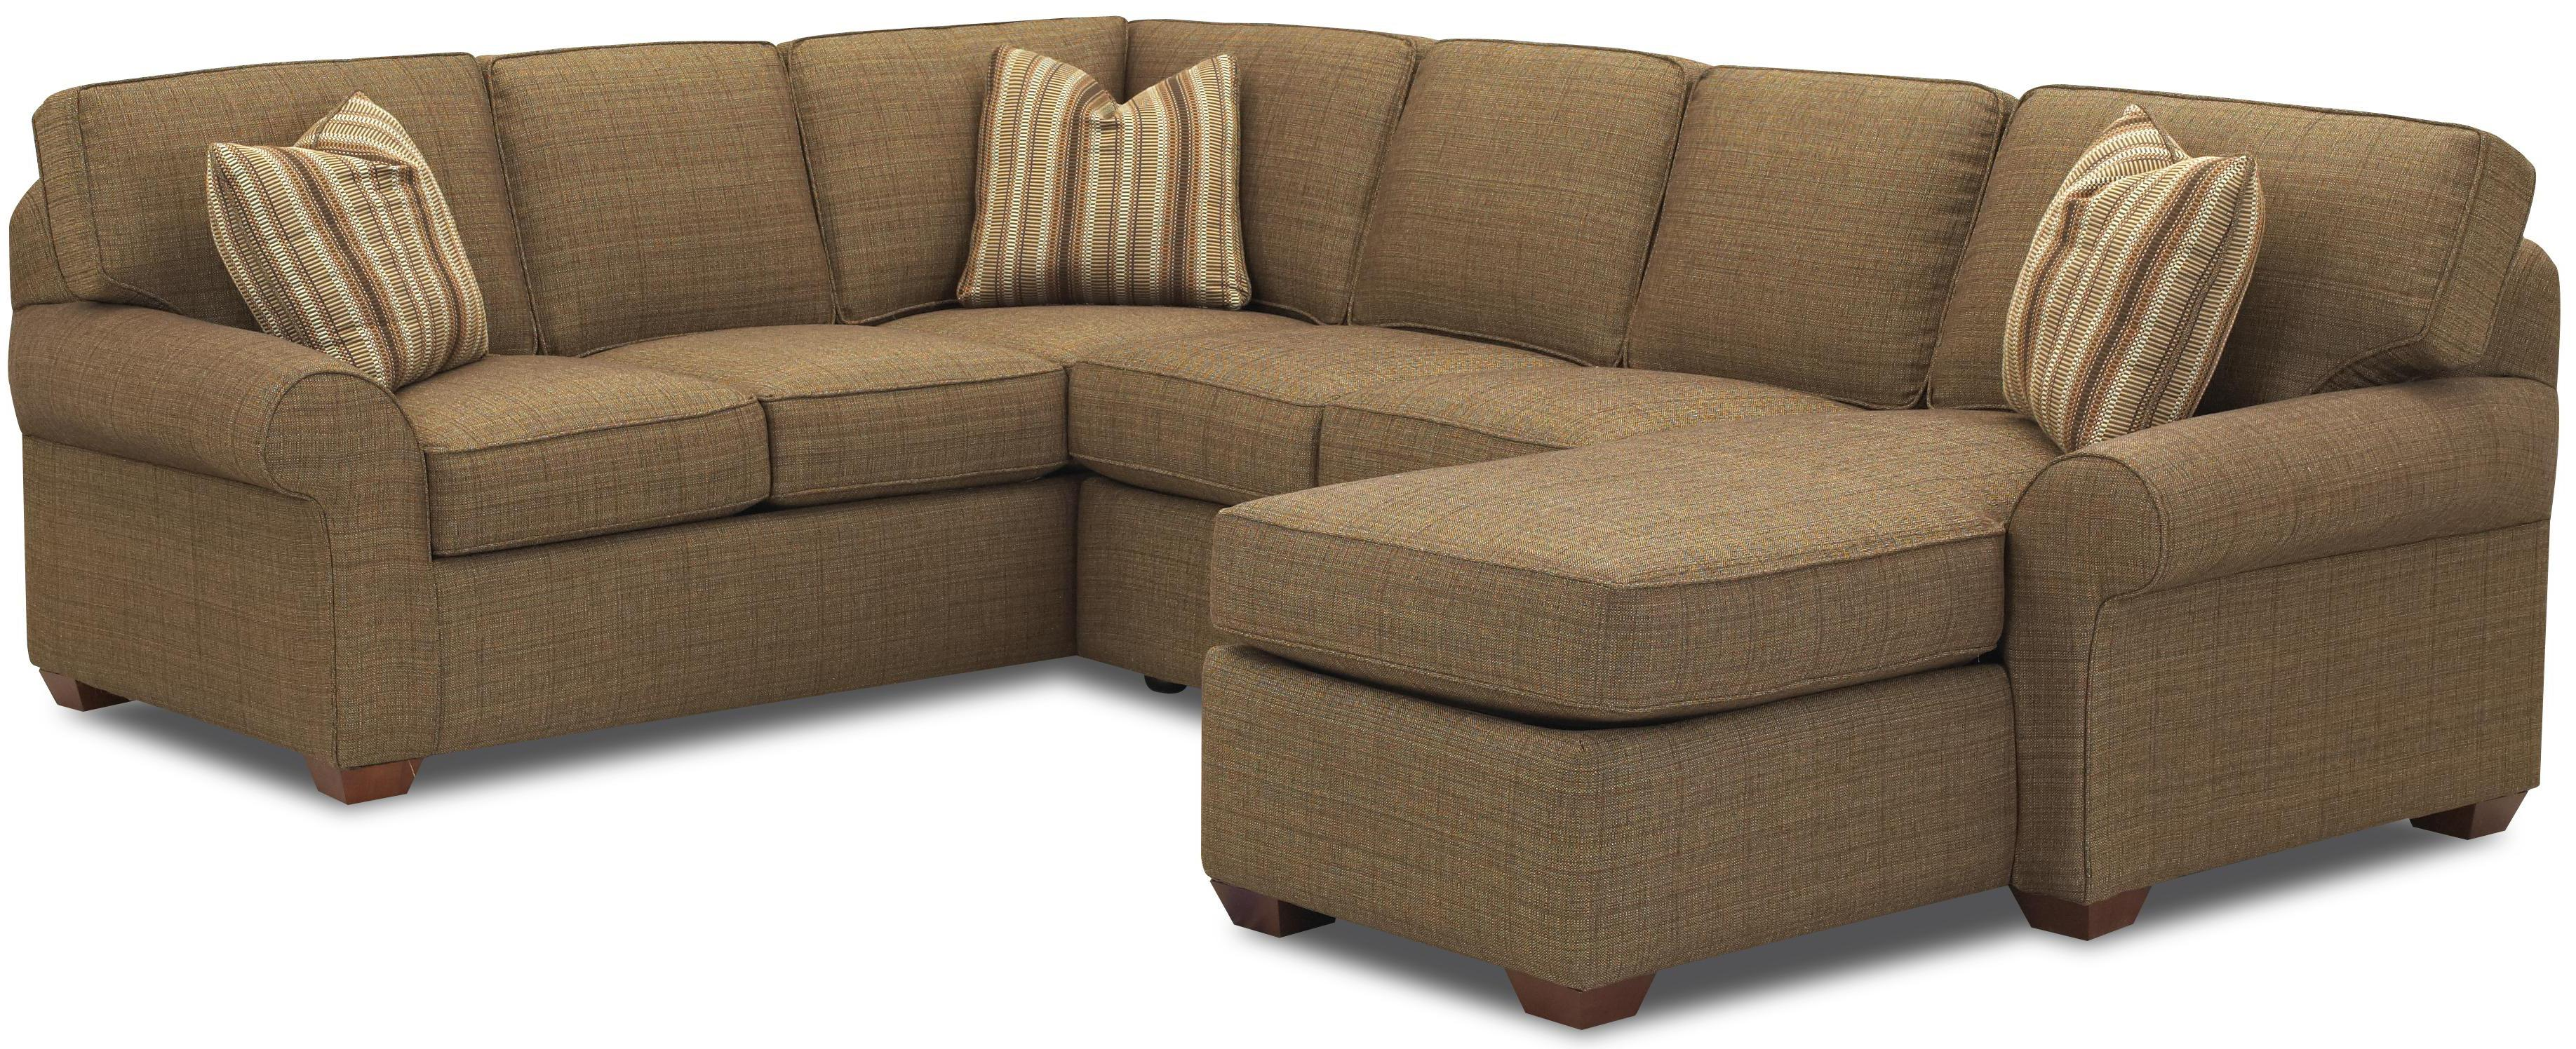 Sectional Sofa Group with Right Chaise Lounge by Klaussner